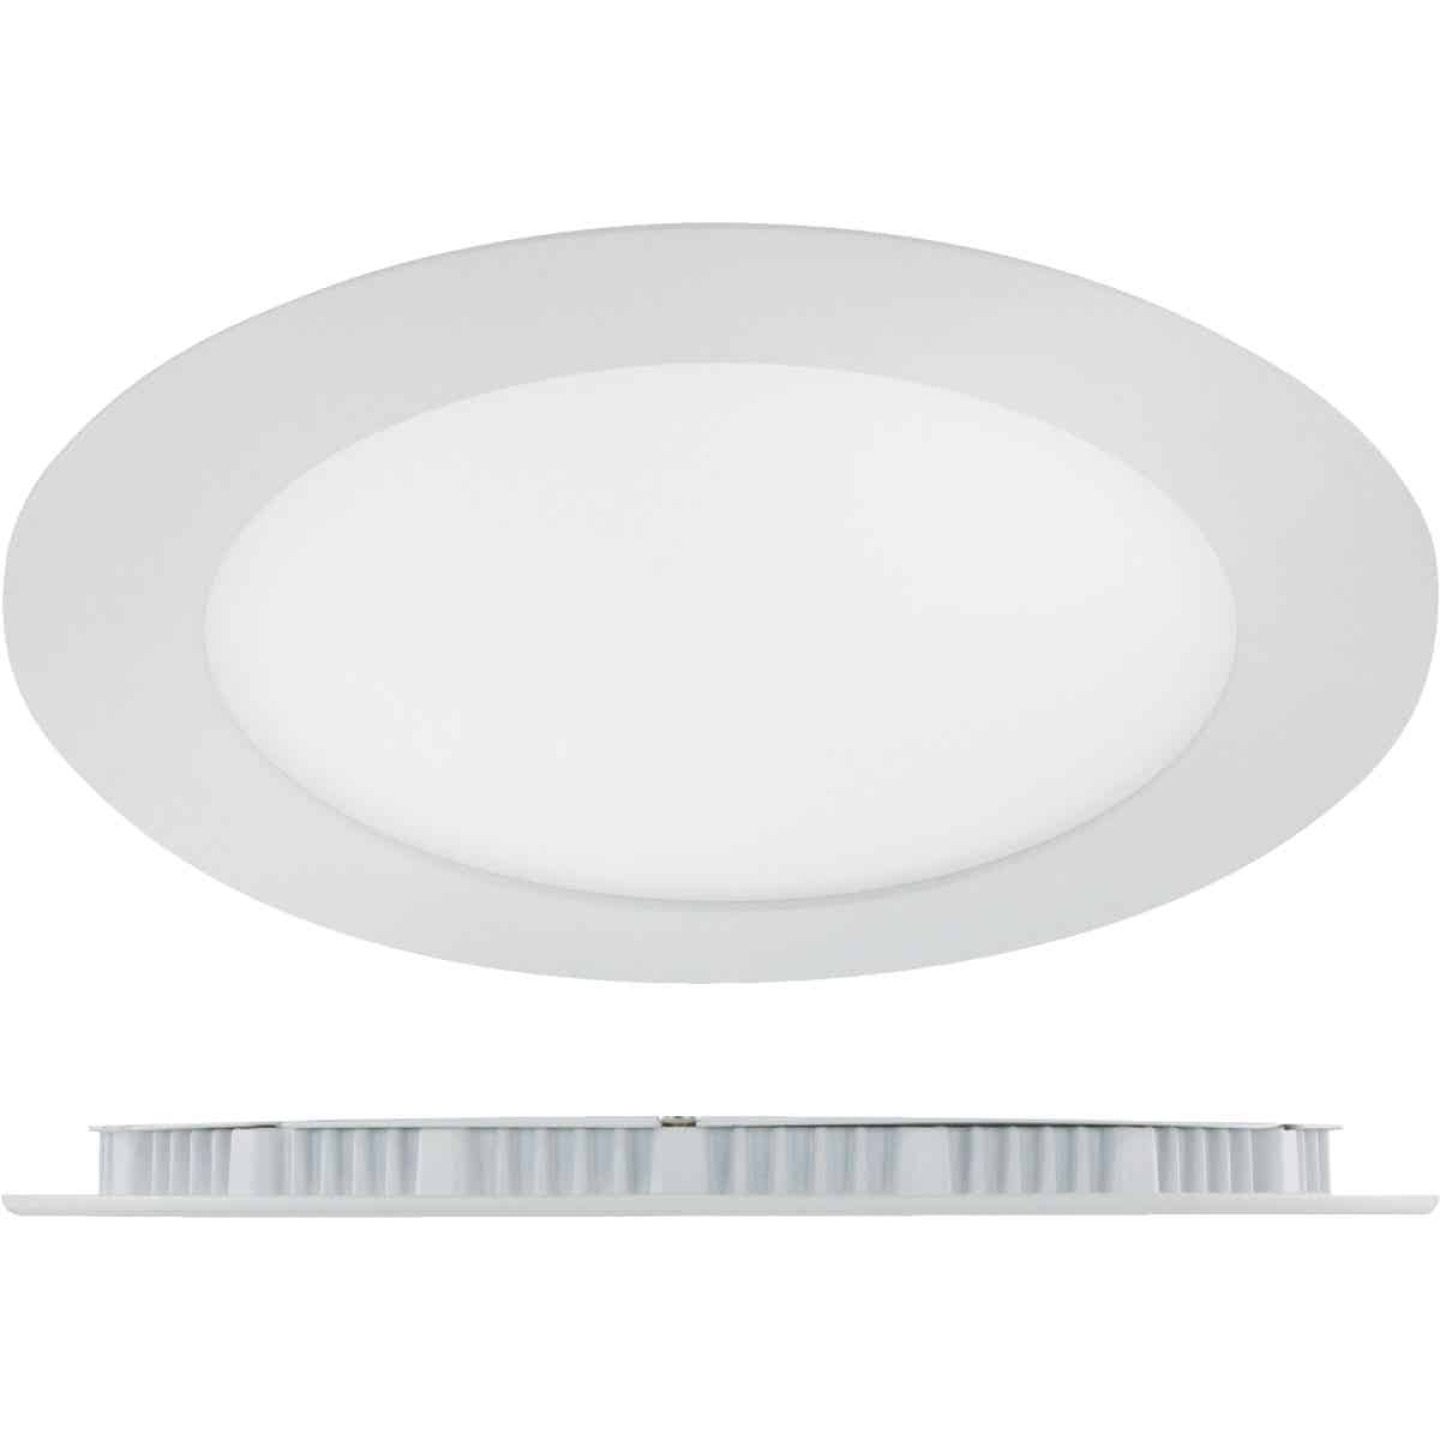 Liteline Trenz ThinLED 6 In. New Construction/Remodel IC Rated White 840 Lm. 4000K Recessed Light Kit Image 1